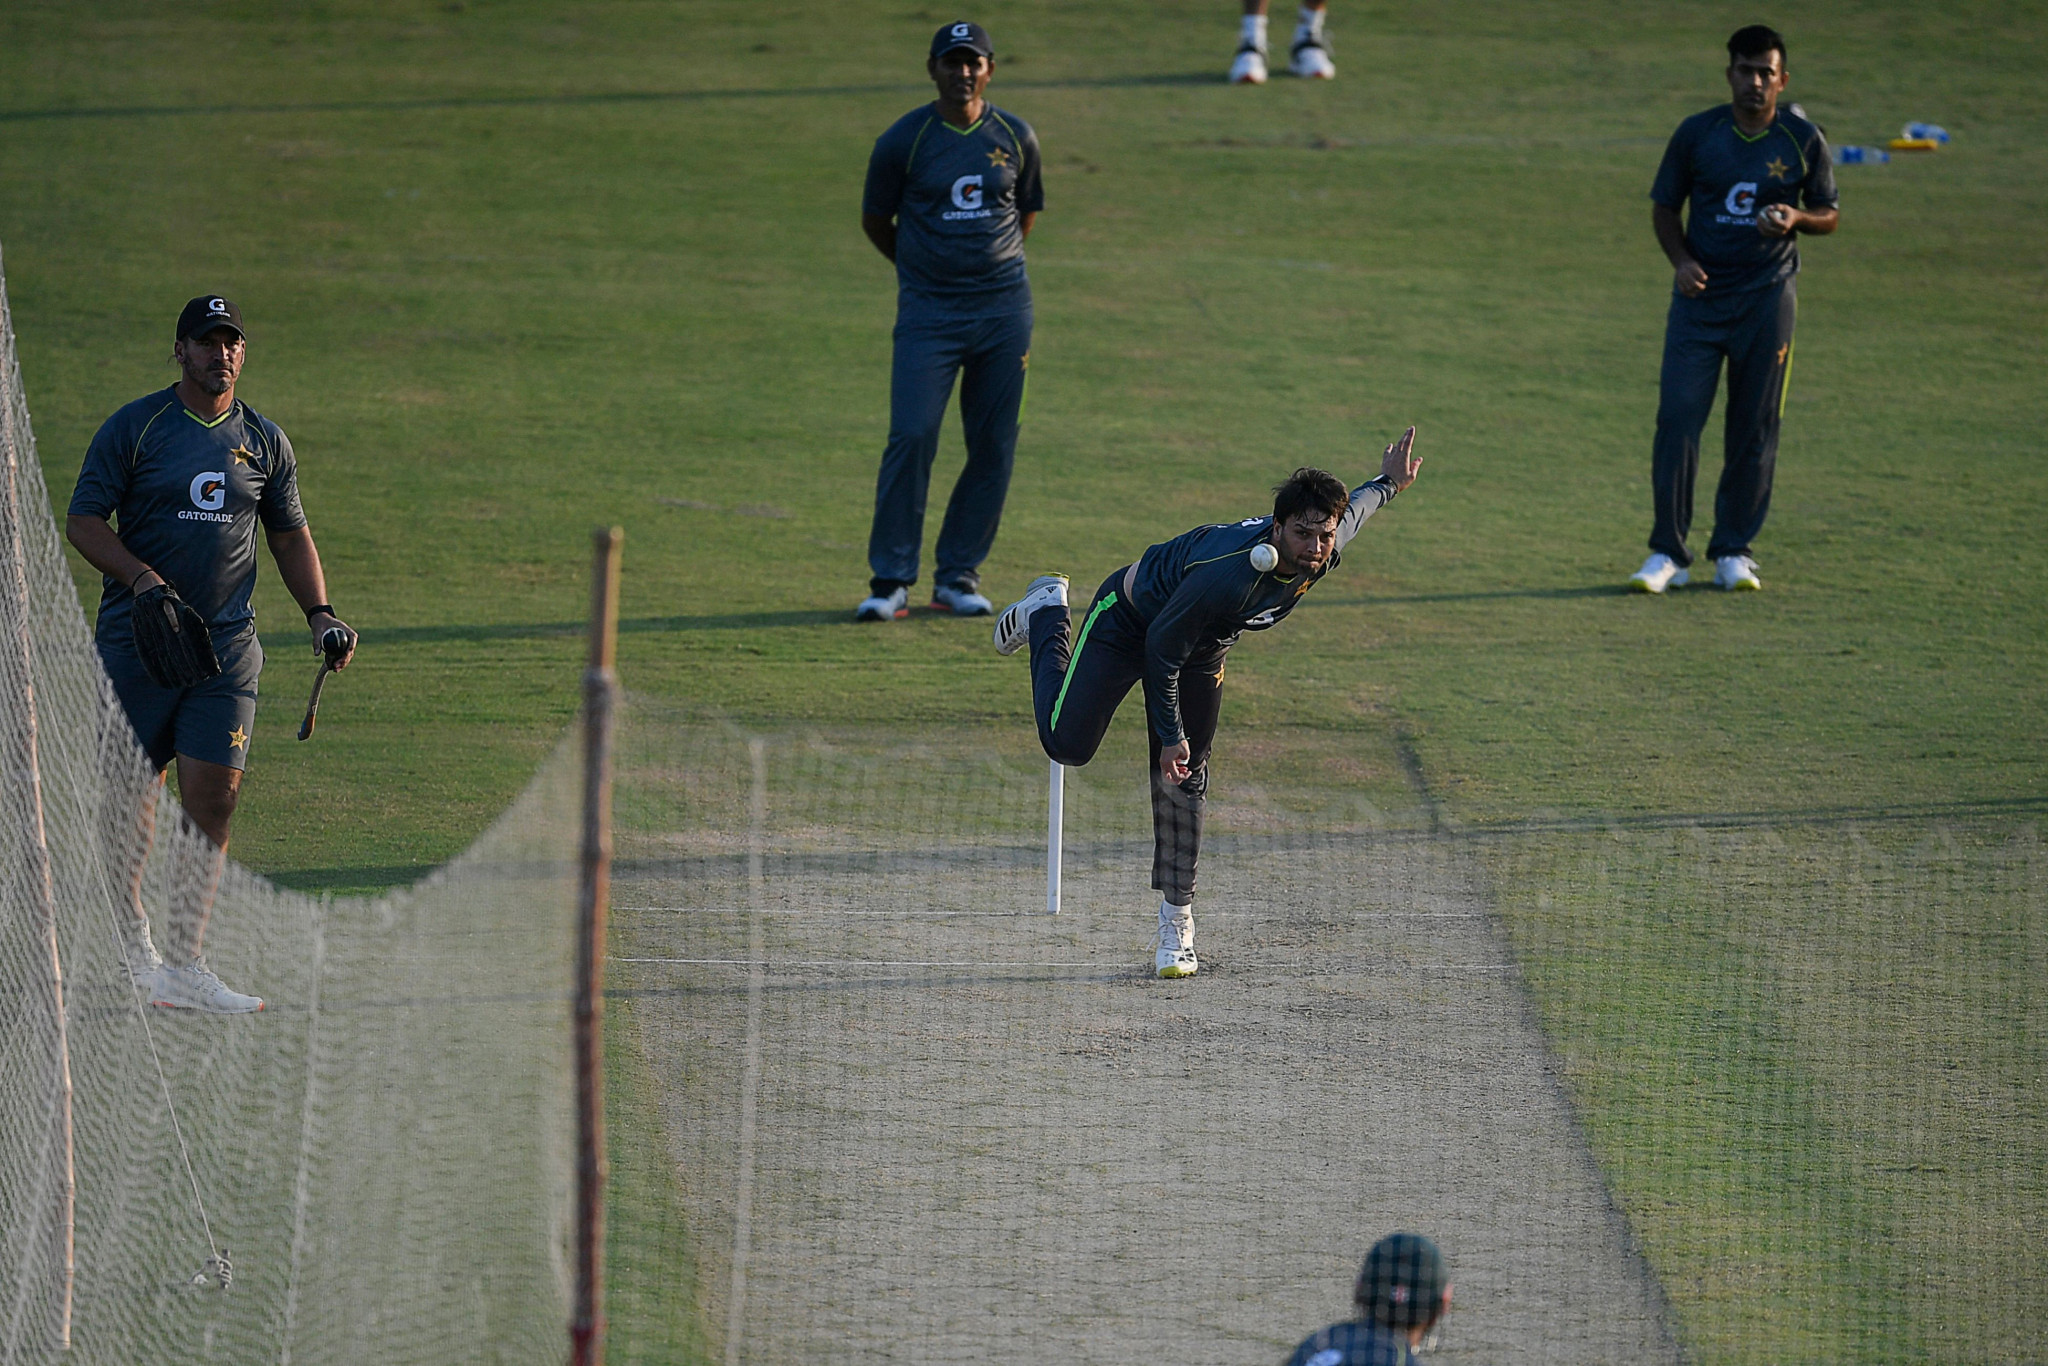 England team withdraw from Pakistan cricket tour due to COVID-19 pressures and security concerns